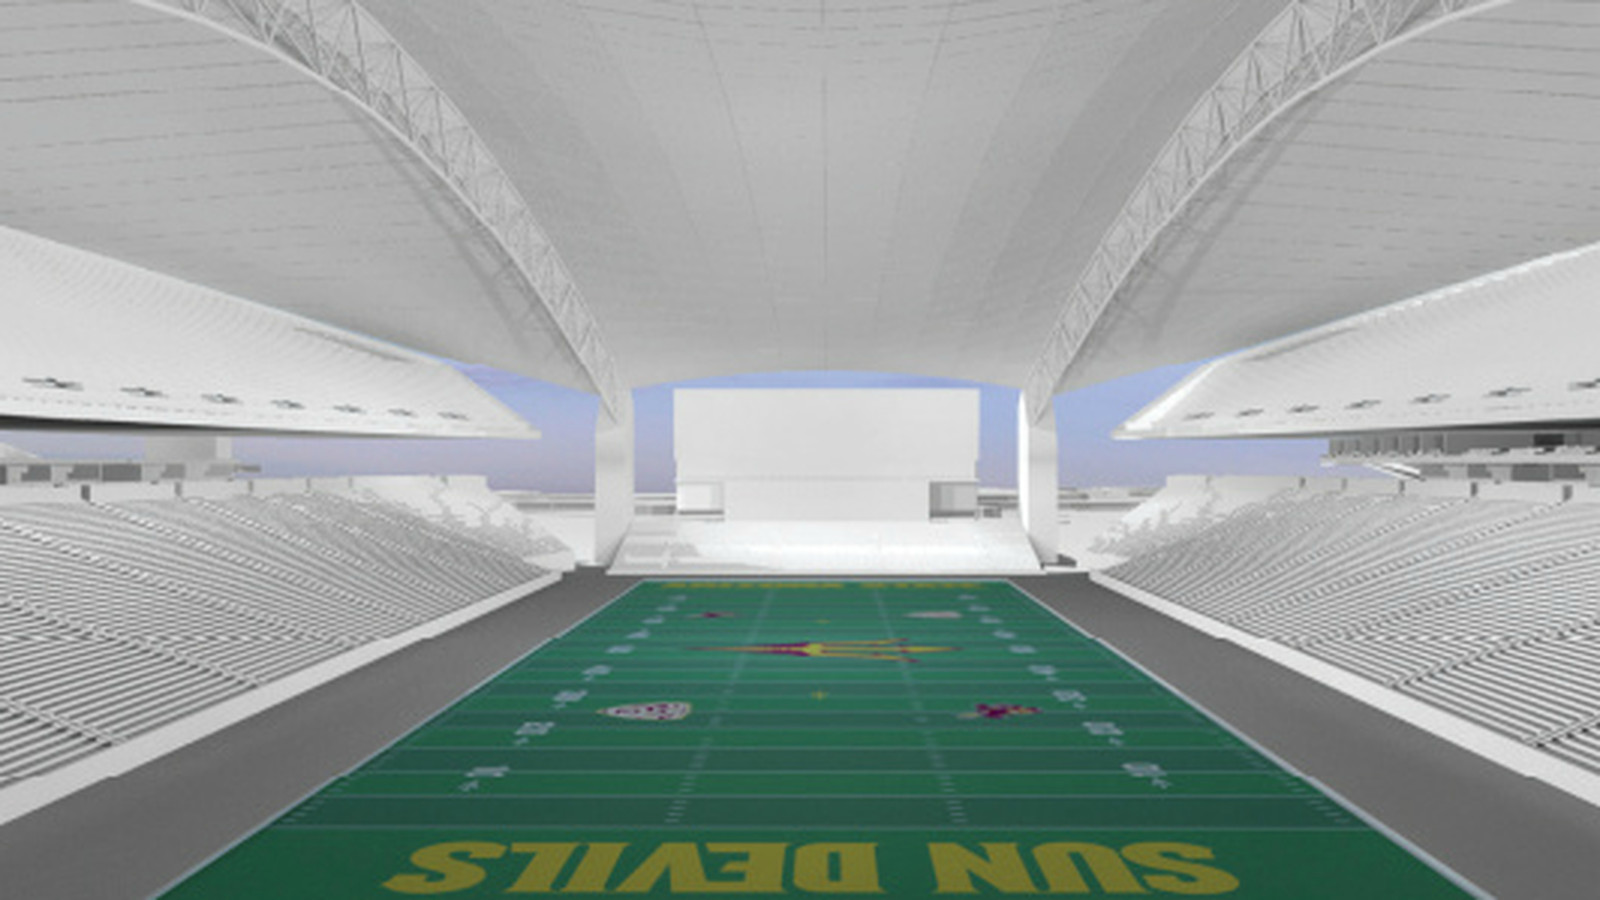 Asu Football On The Move The Case For Chase Field House